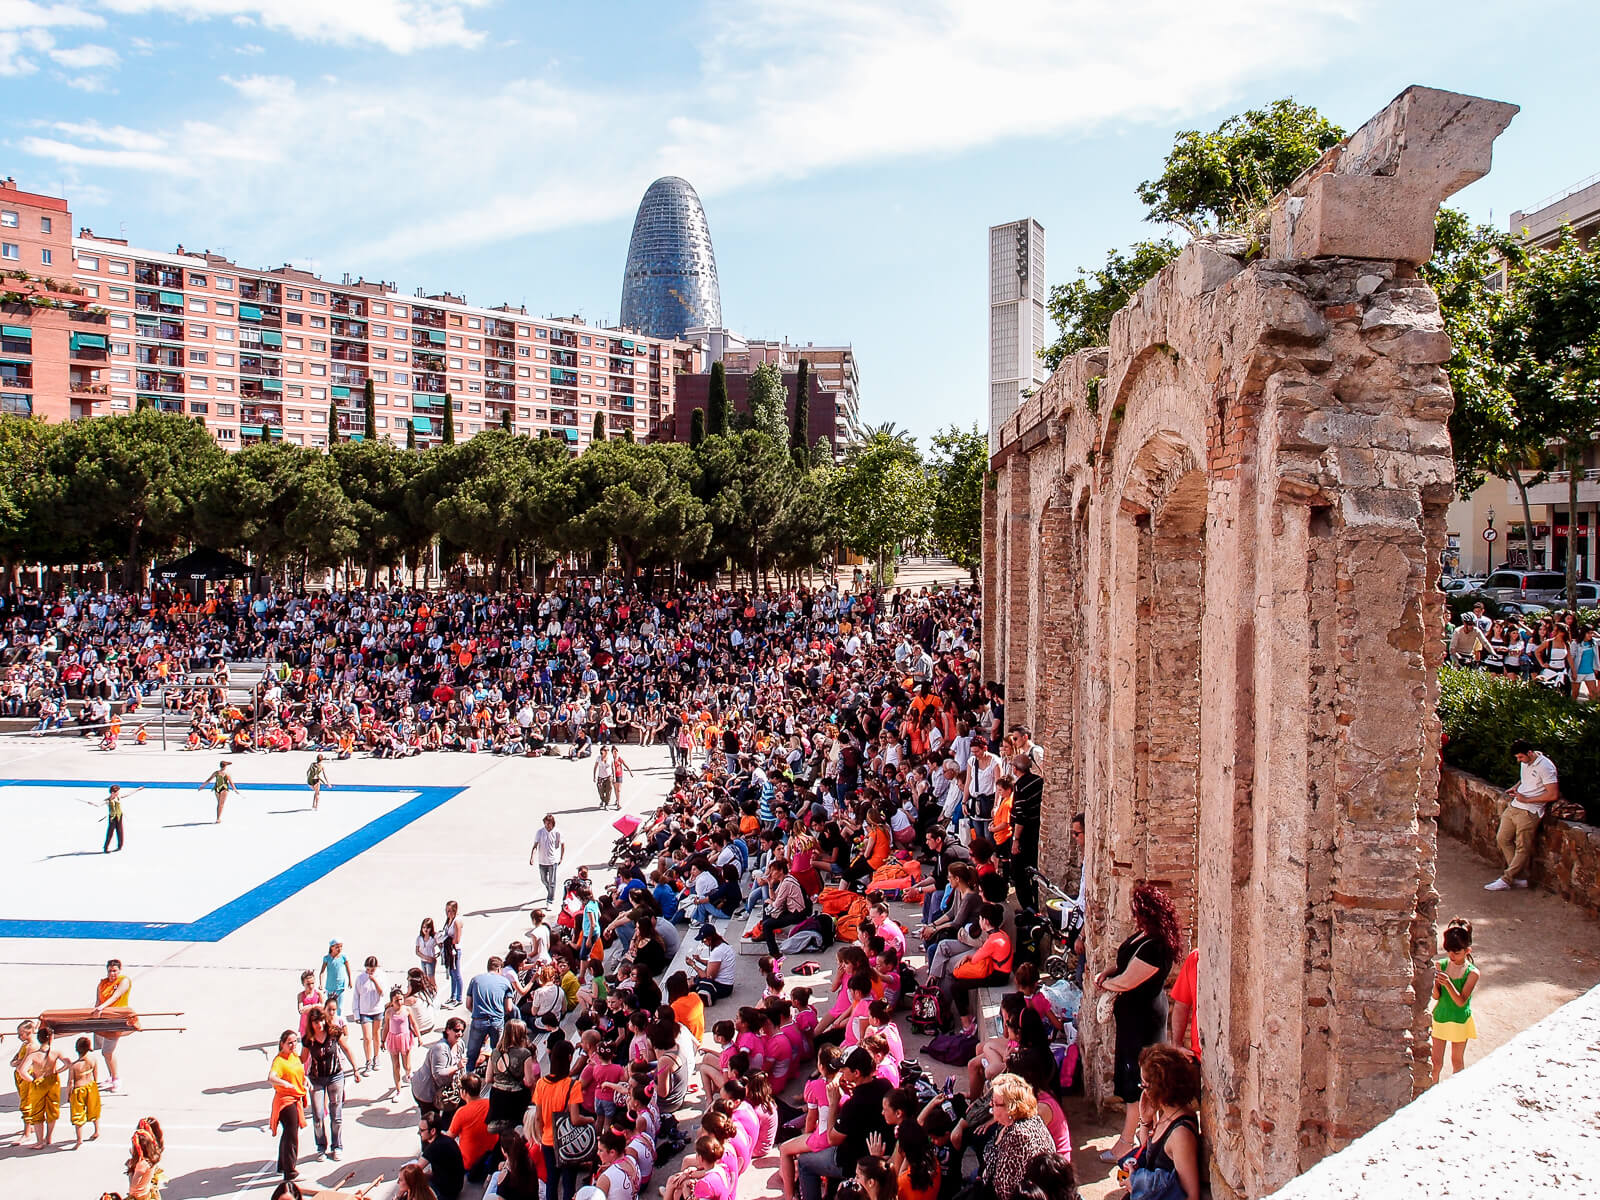 Barcelona Street Photography, Parc del Clot buildings, antique arches ruins, children sport event spectators, torre agbar